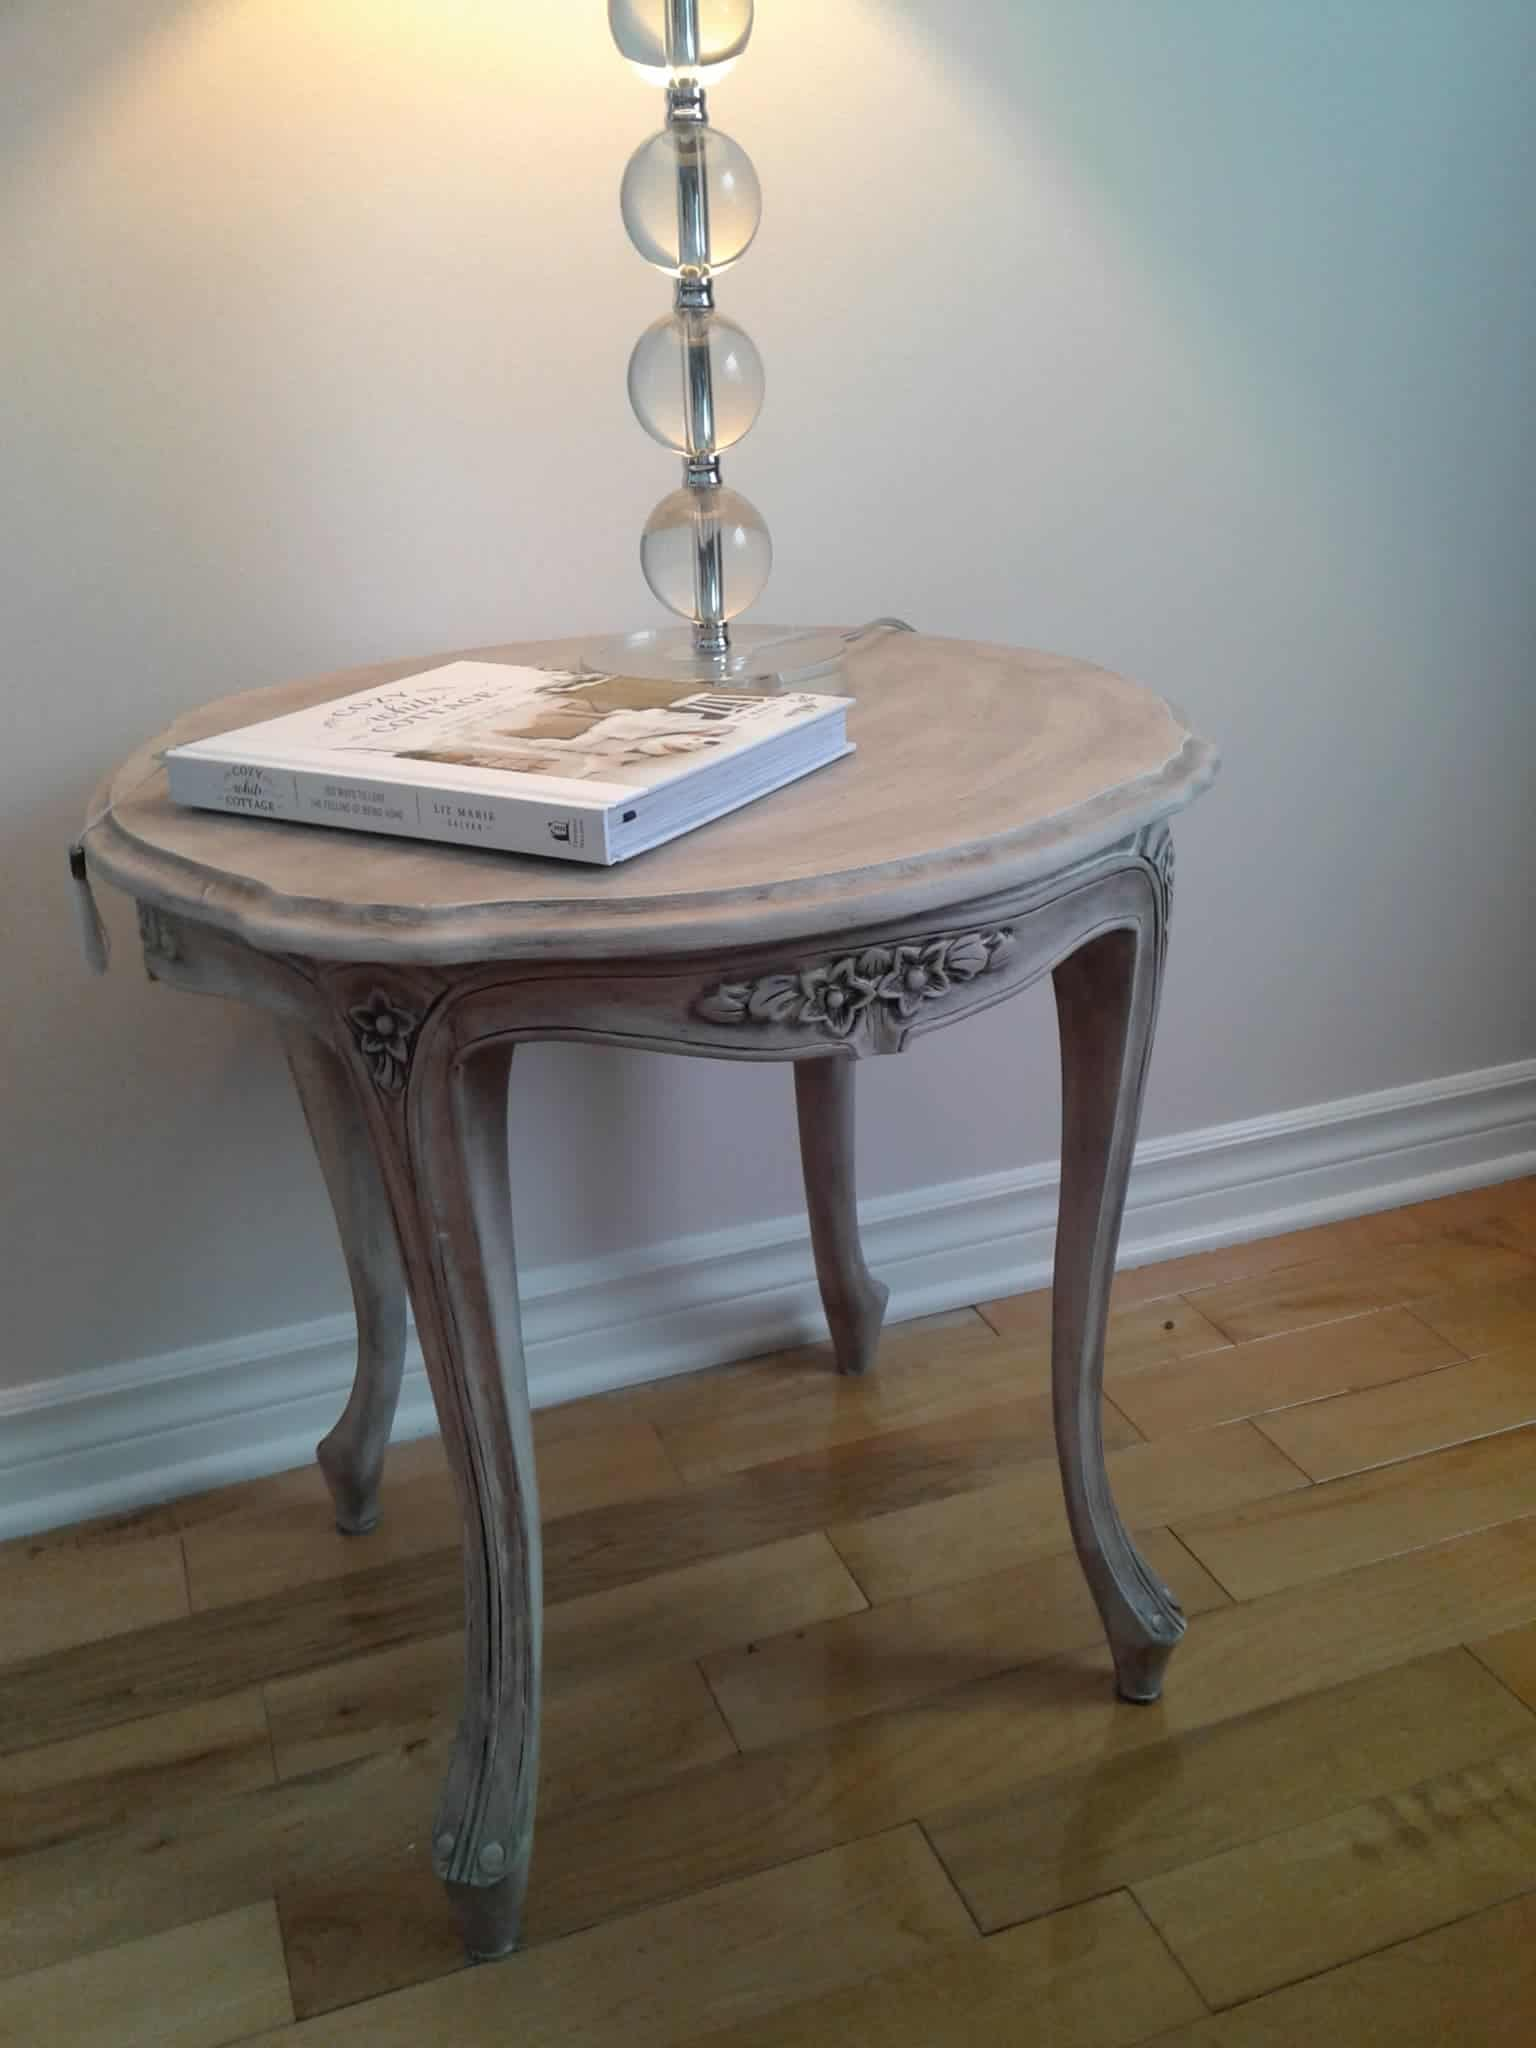 table d'appoint Shabby chic